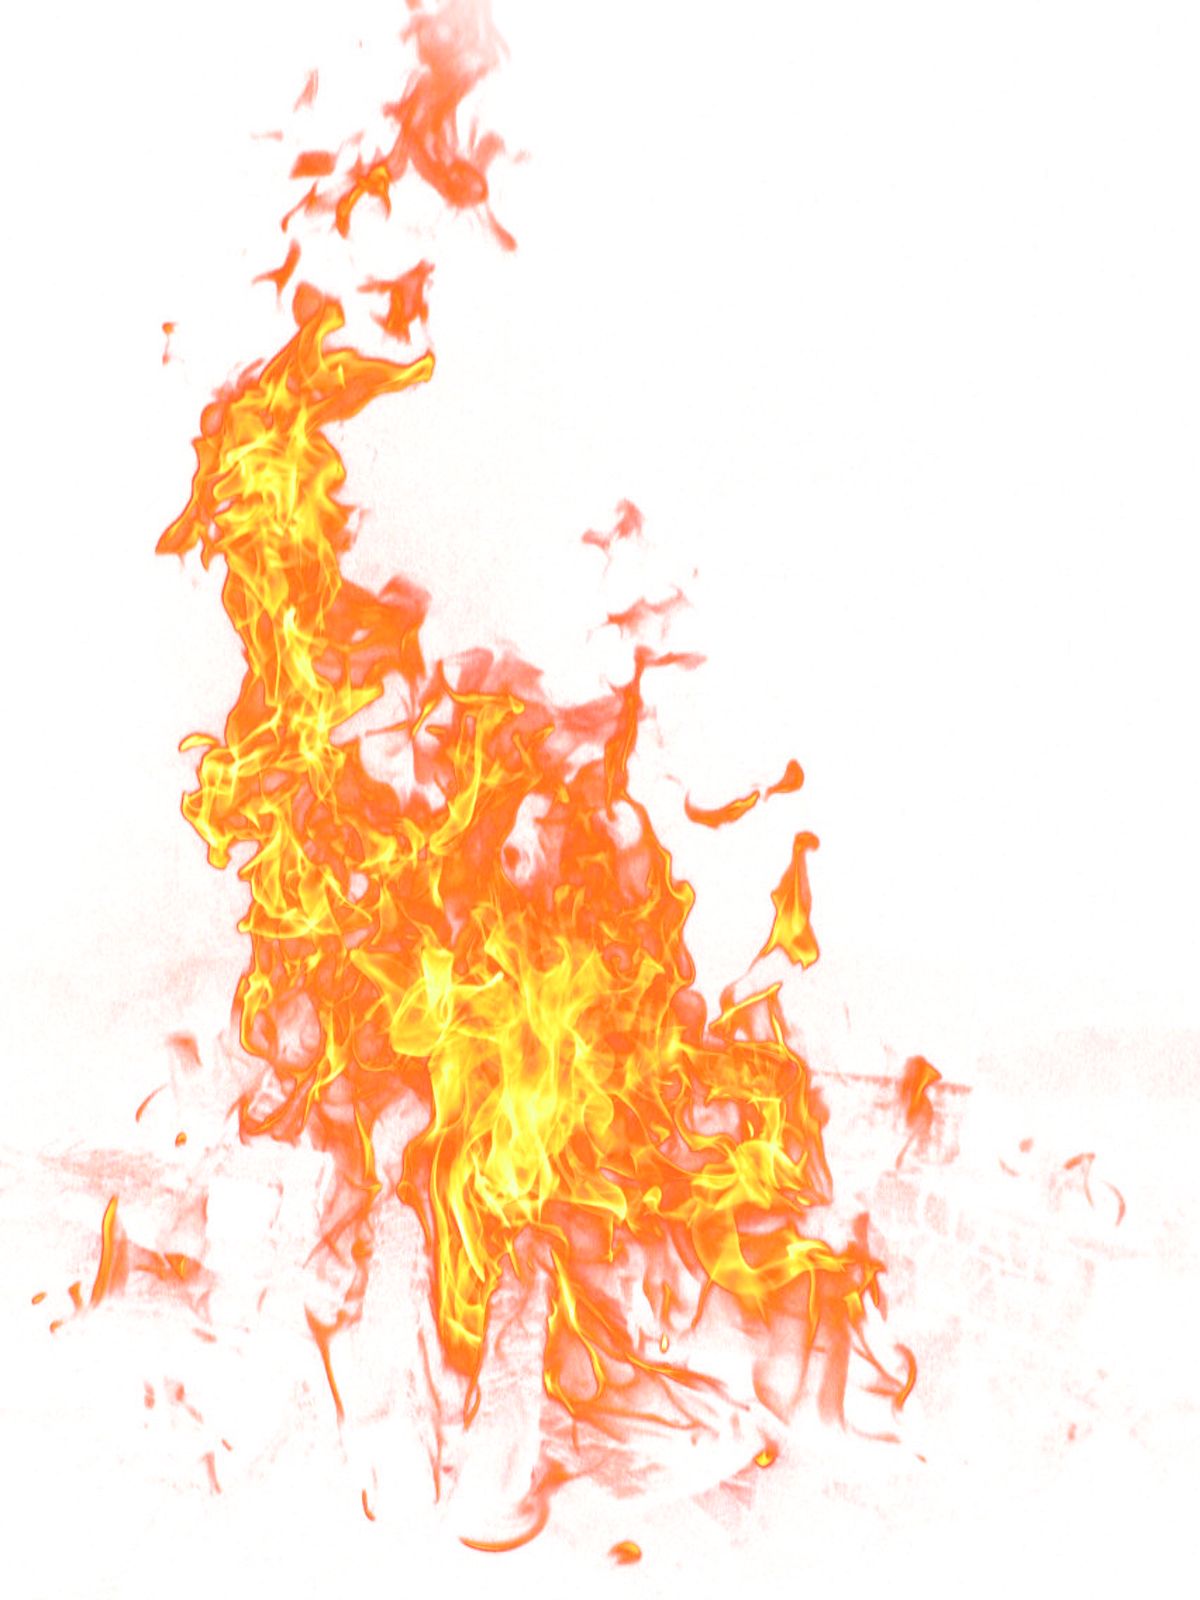 Fire Flames PNG - 9647